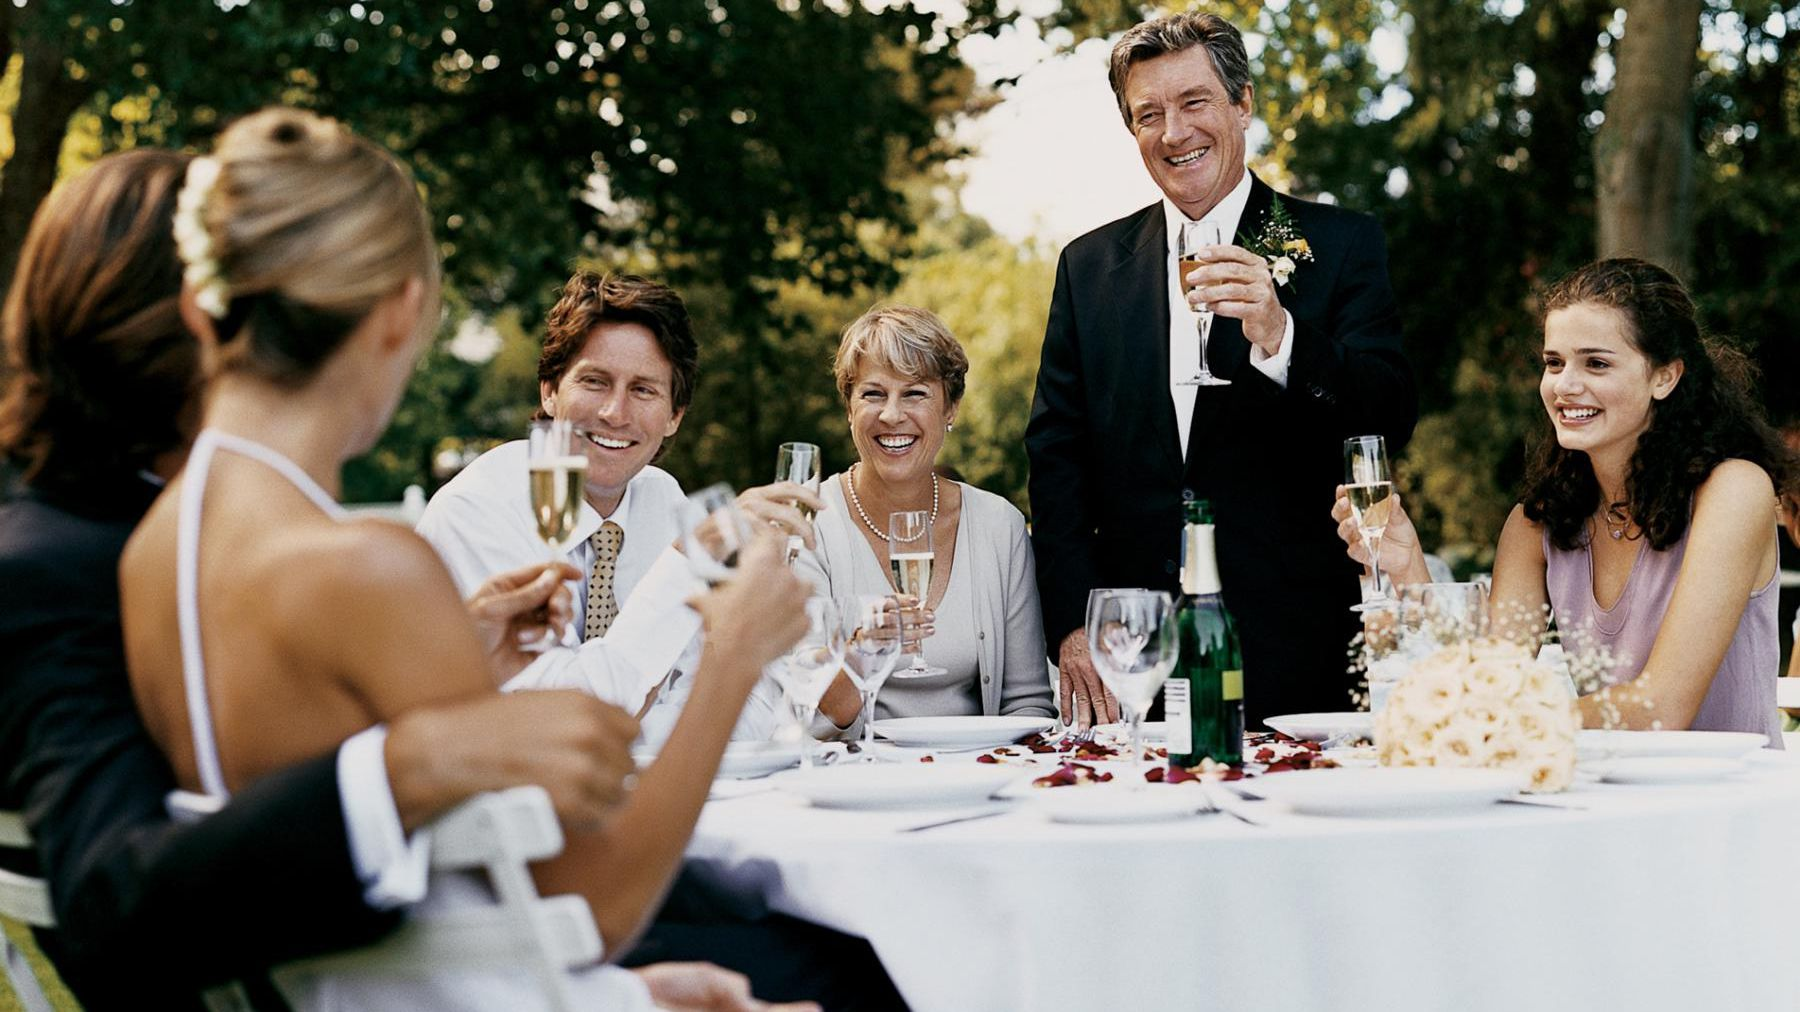 Wedding Toast Quotes For The Father Of The Groom